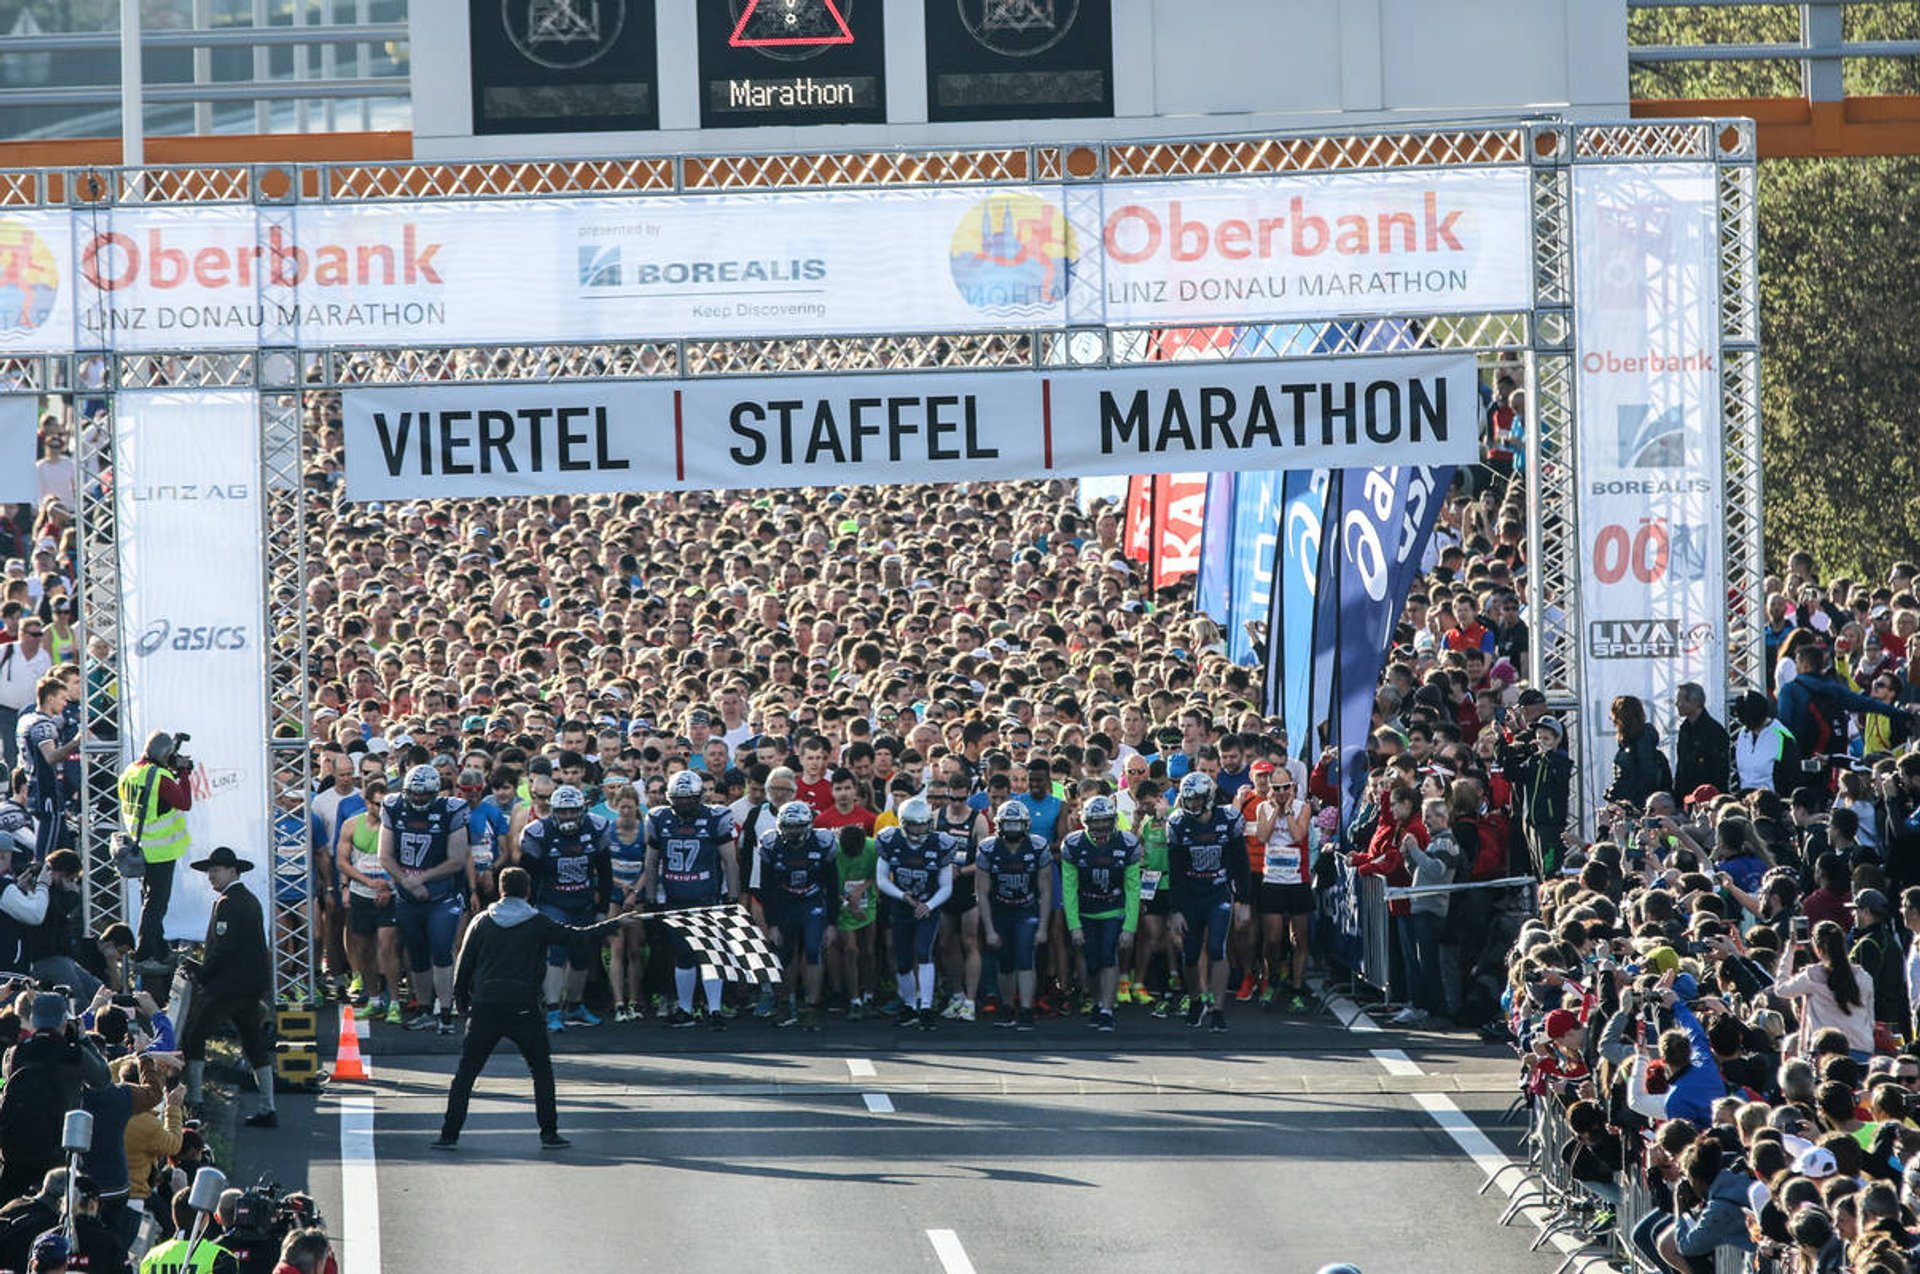 Linz Marathon in Austria 2019 - Best Time